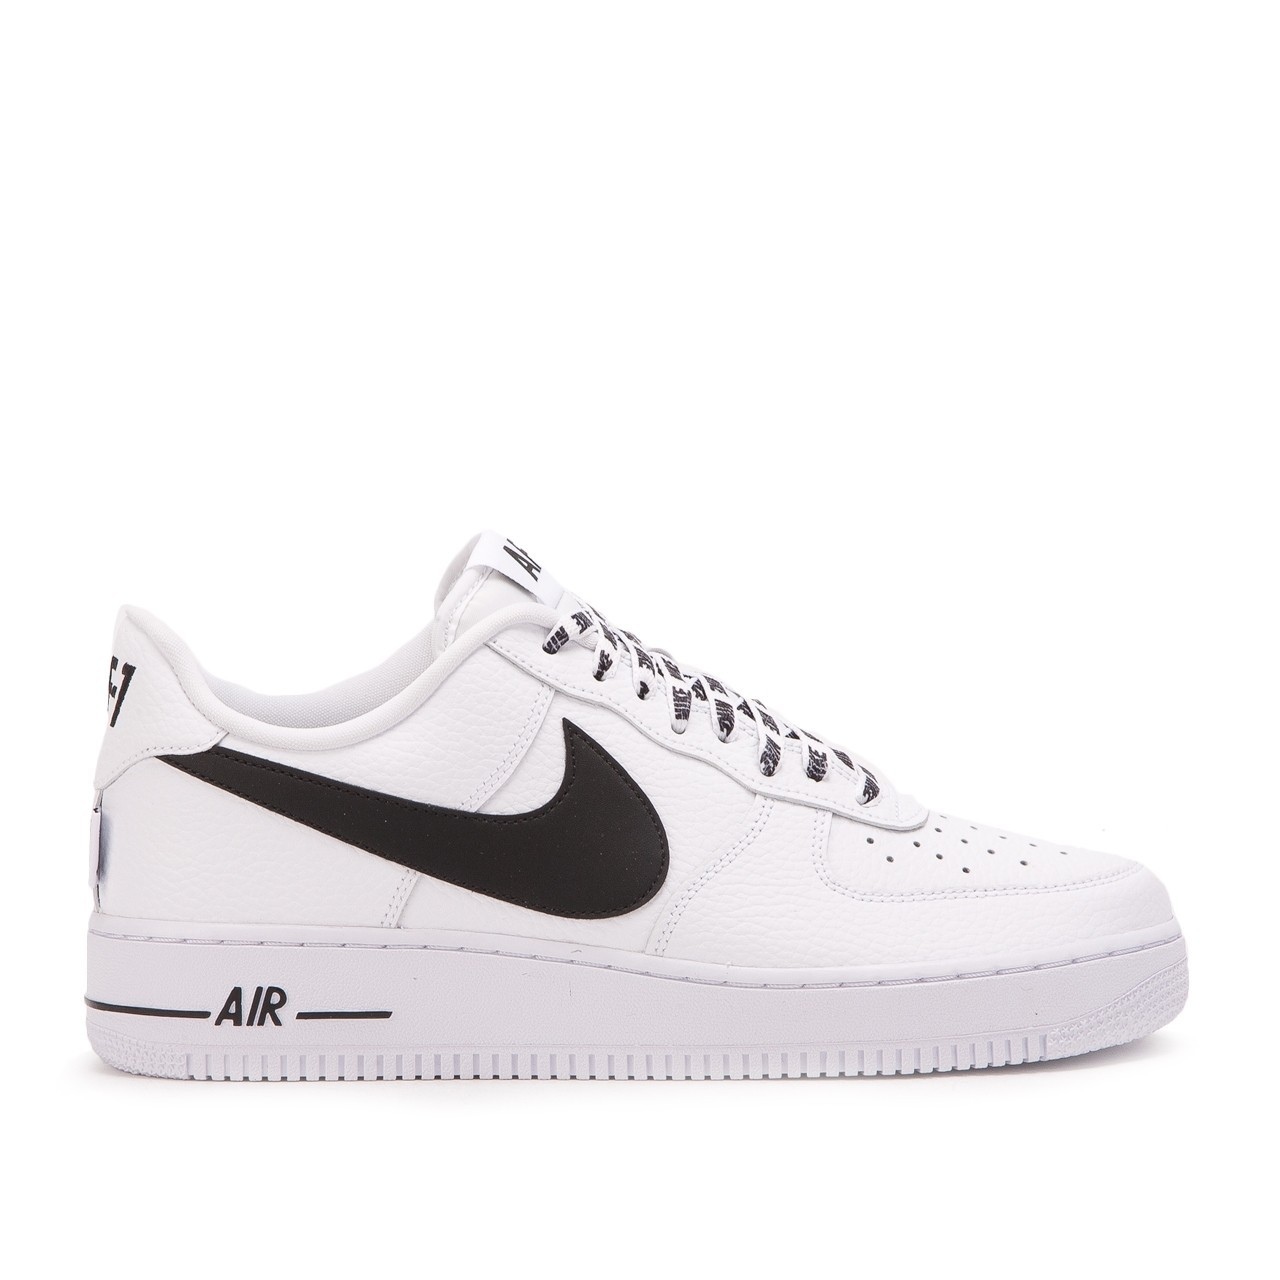 nike air force 1 nere bianche